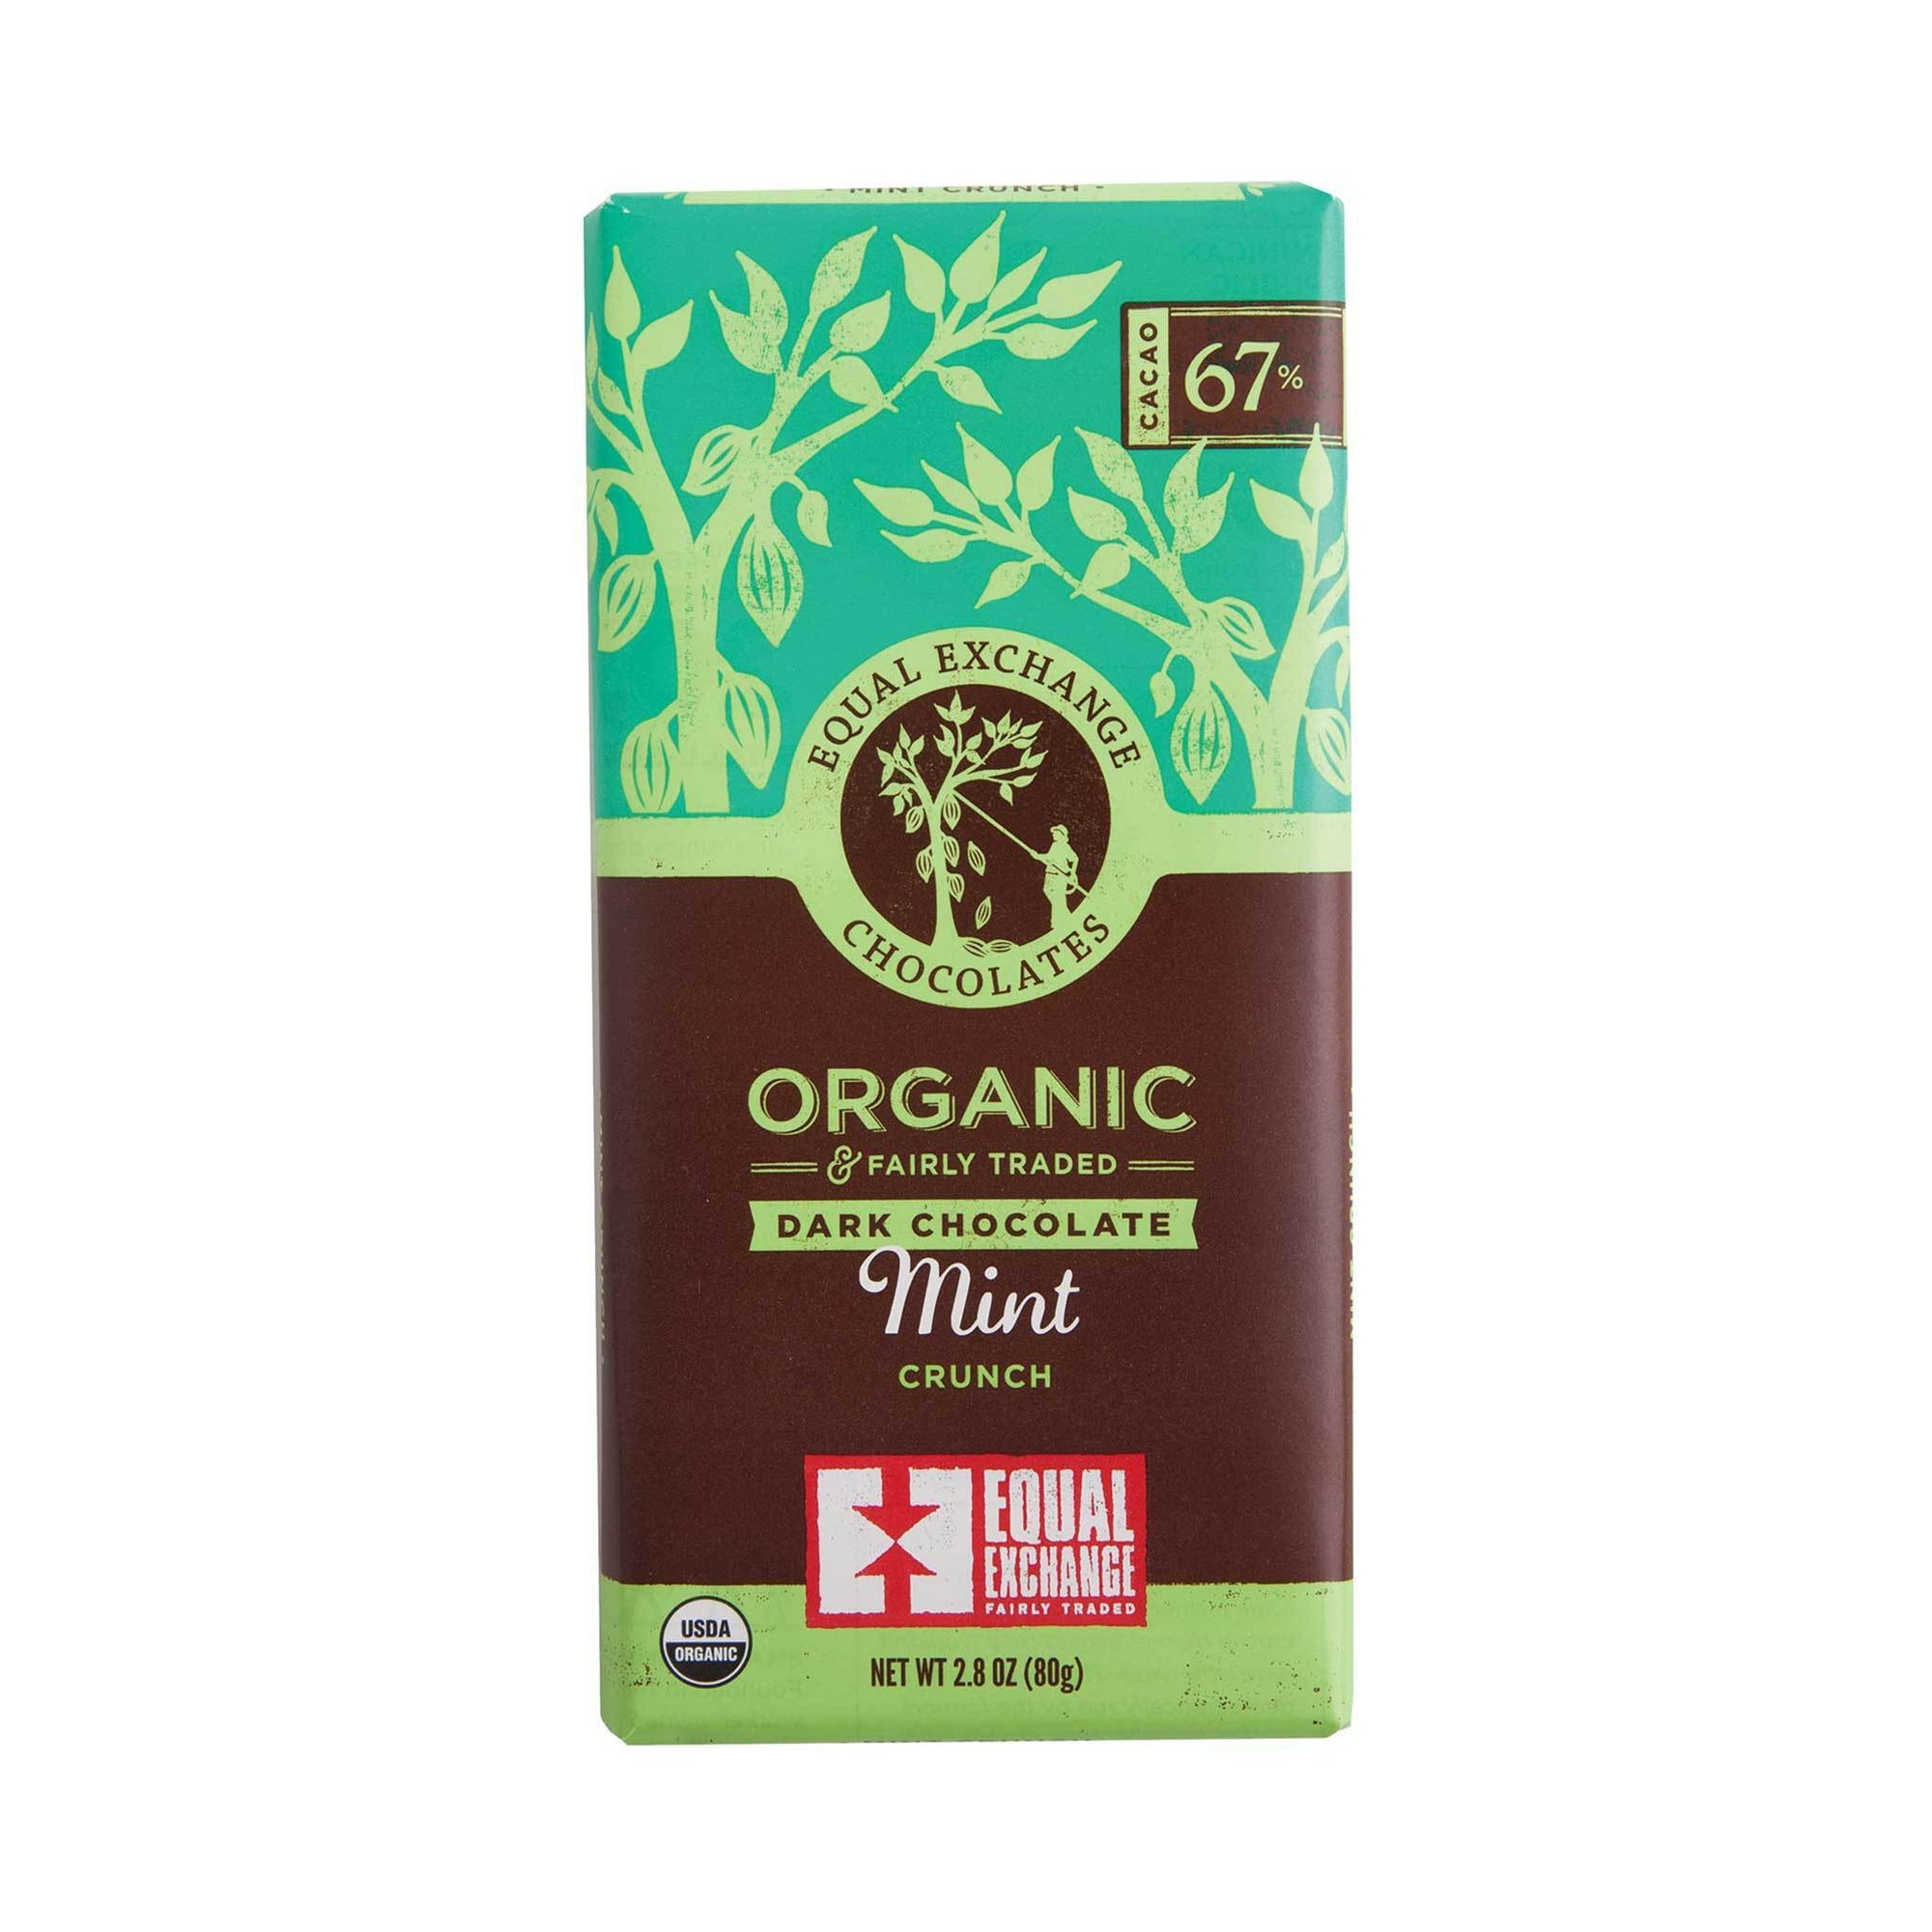 Mint Crunch Organic Dark Chocolate - Equal Exchange - 2.8 oz